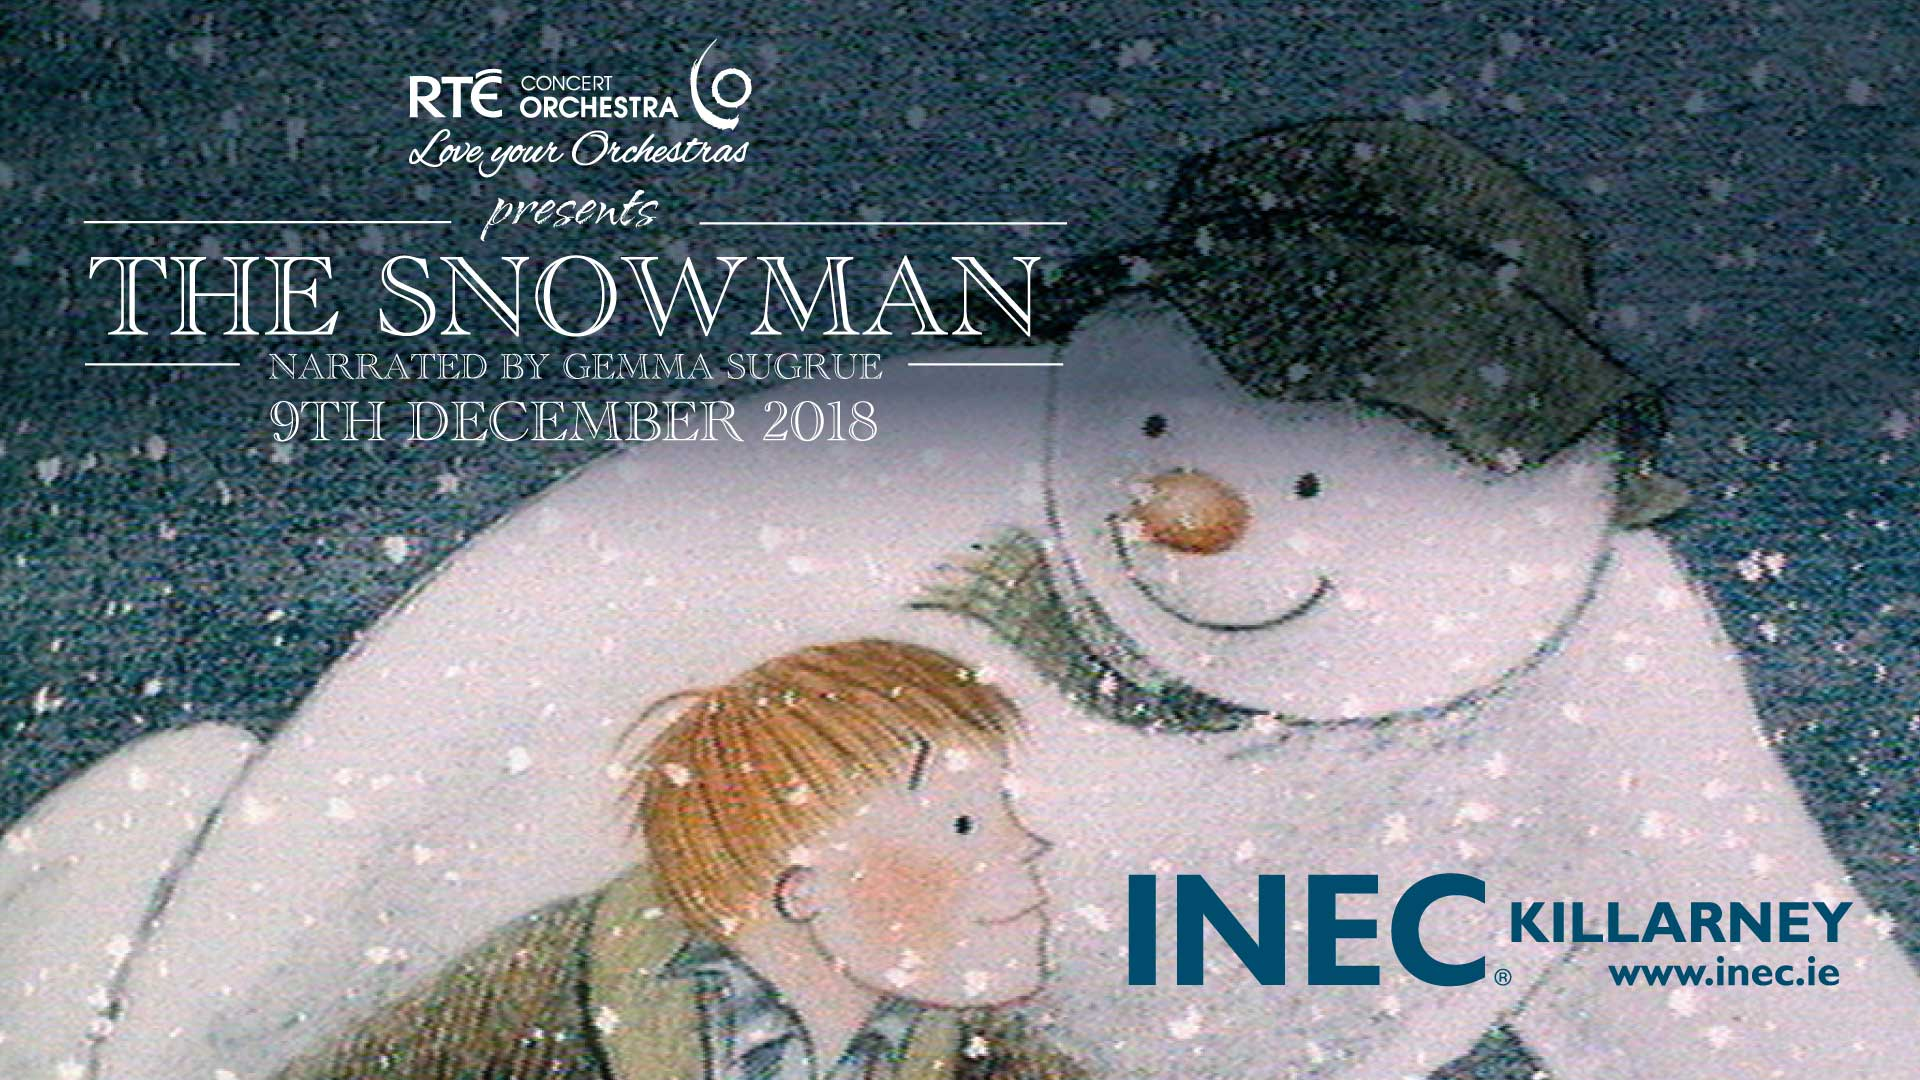 RTÉ Concert Orchestra presents The Snowman narrated by Gemma Sugrue this December 9th in the INEC Killarney